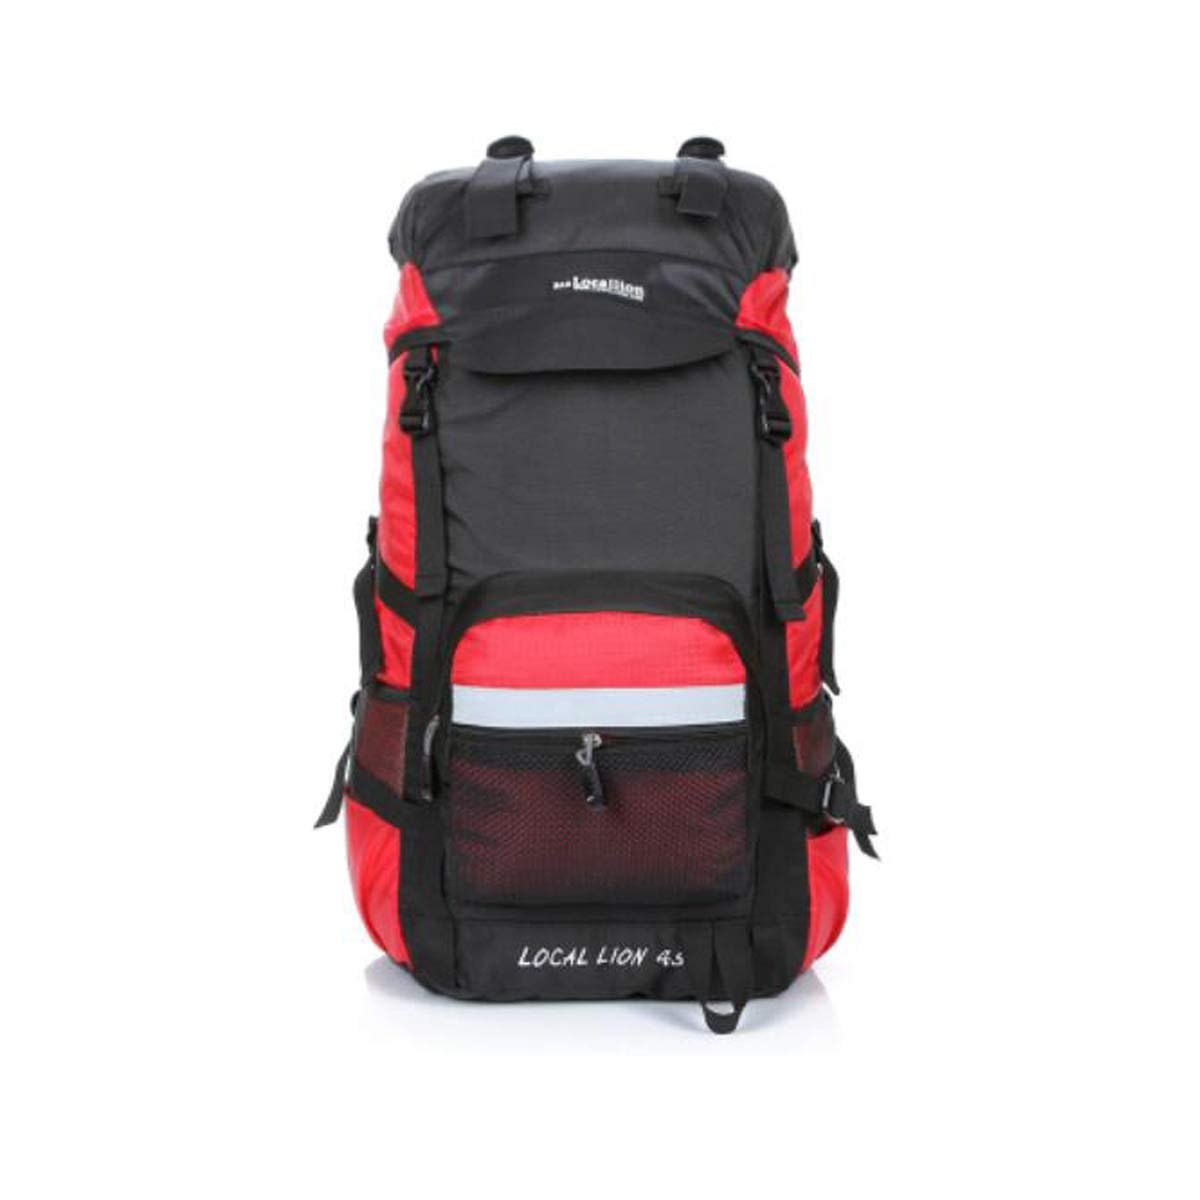 Outdoor Backpack Large Capacity 45L 60L Travel Backpack Outdoor Mountaineering Bag Color : Red, Size : 60L